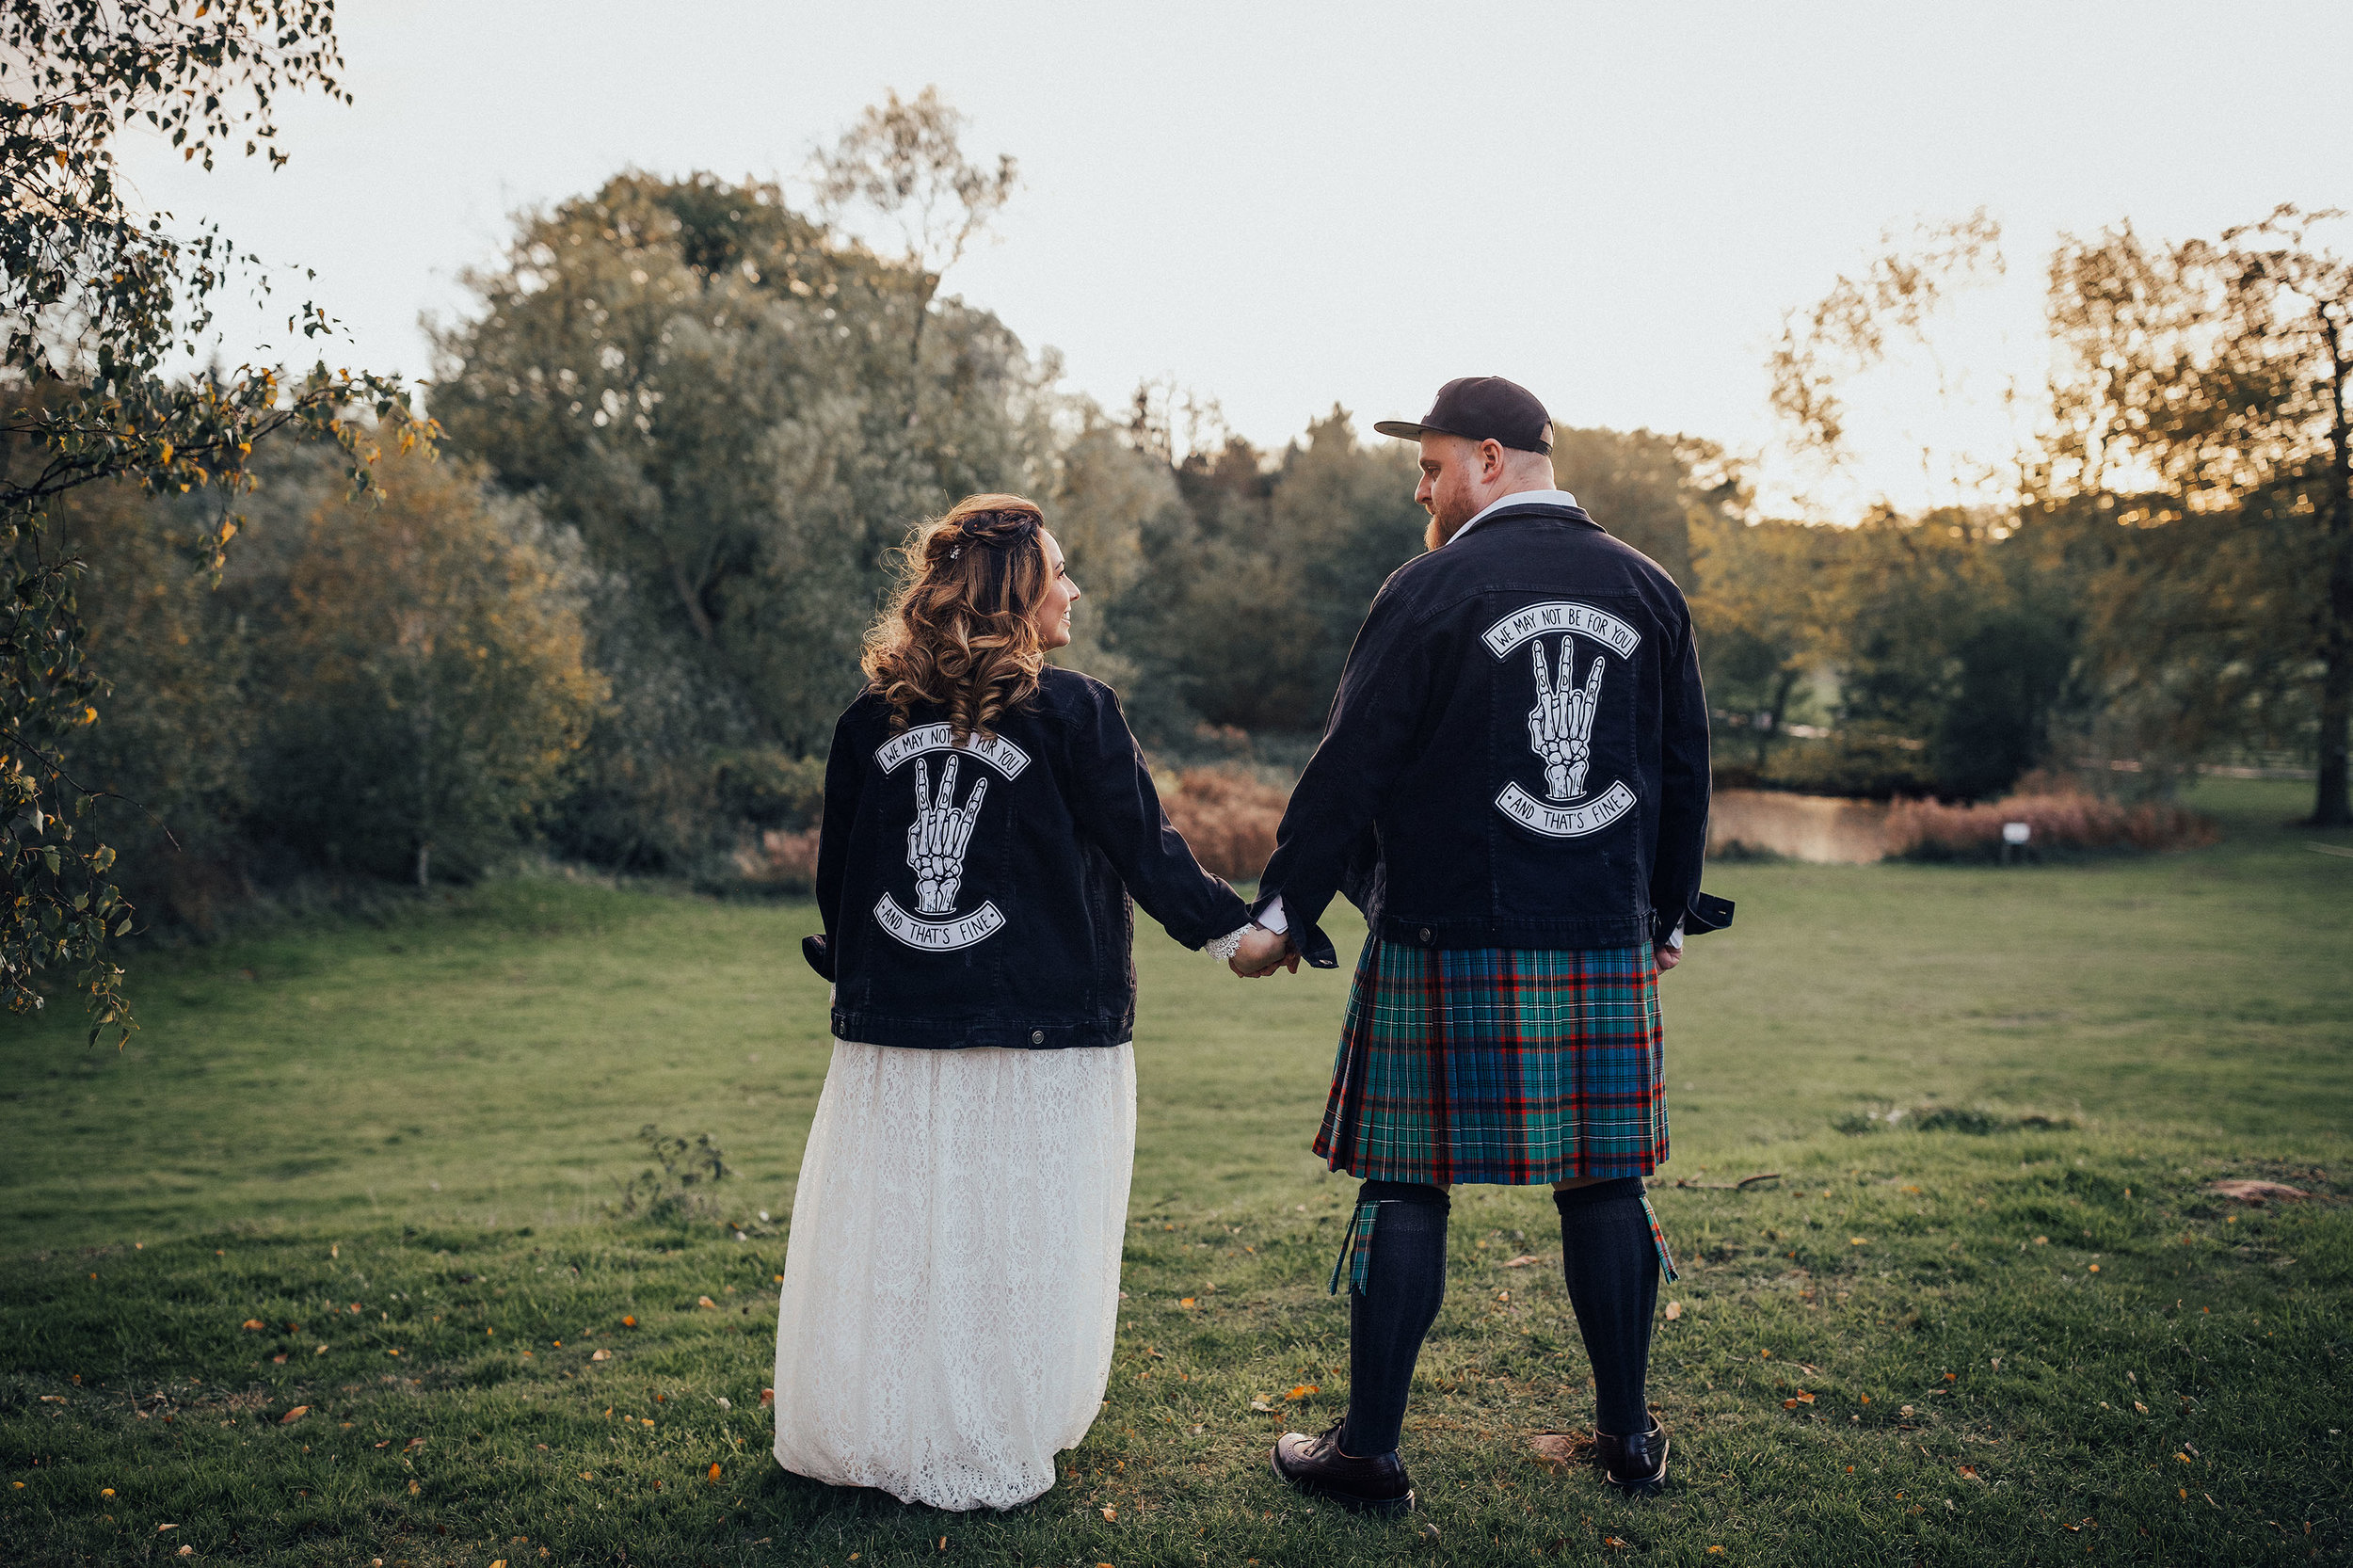 PJ_PHILLIPS_PHOTOGRAPHY_2018_SCOTLAND_WEDDING_PHOTOOGRAPHER_194.jpg